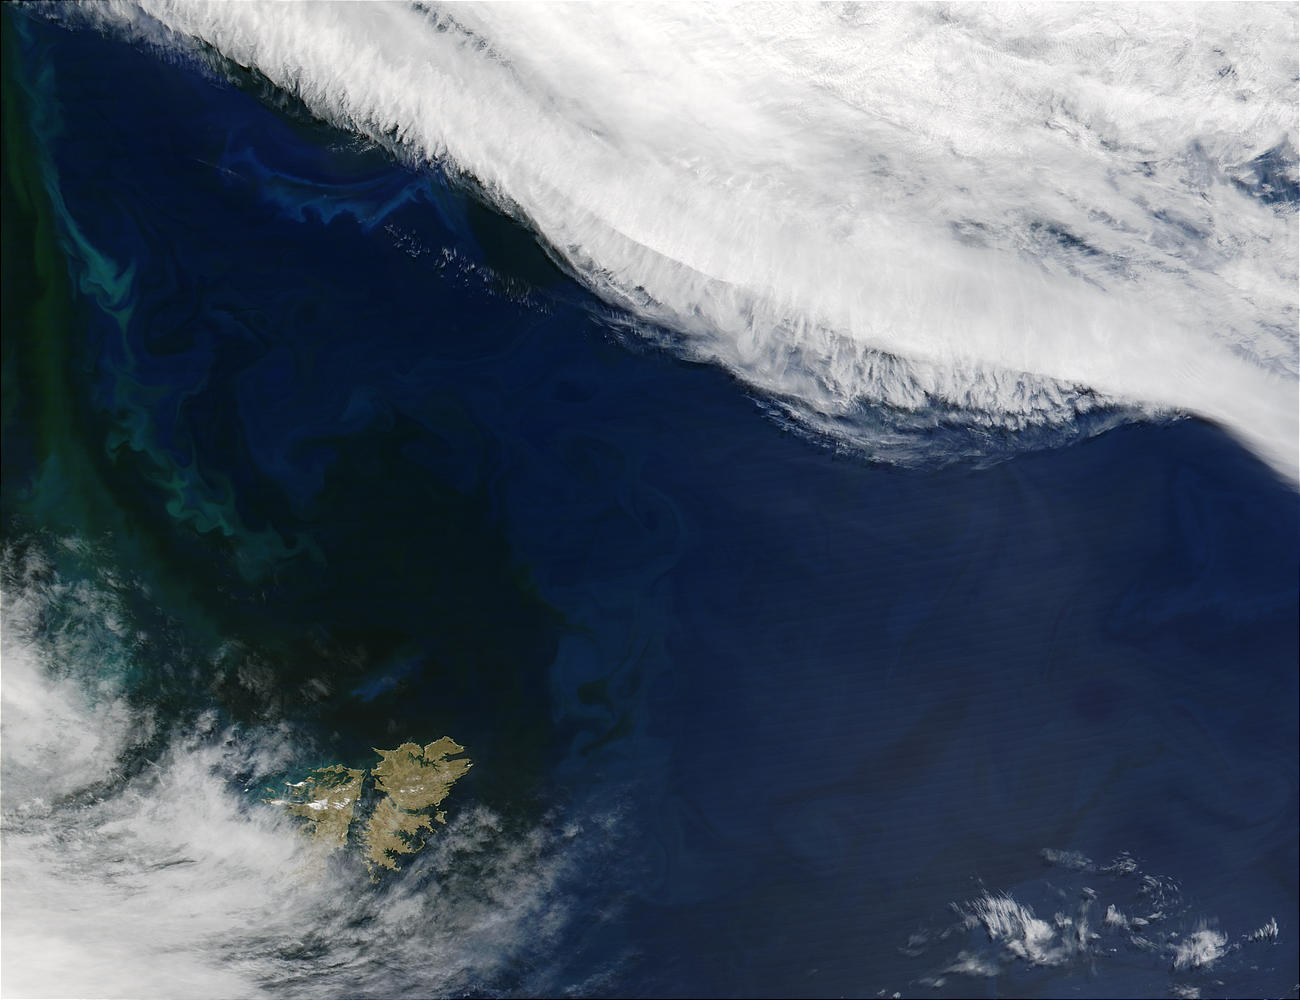 Phytoplankton bloom near Falkland Islands, South Atlantic Ocean - related image preview